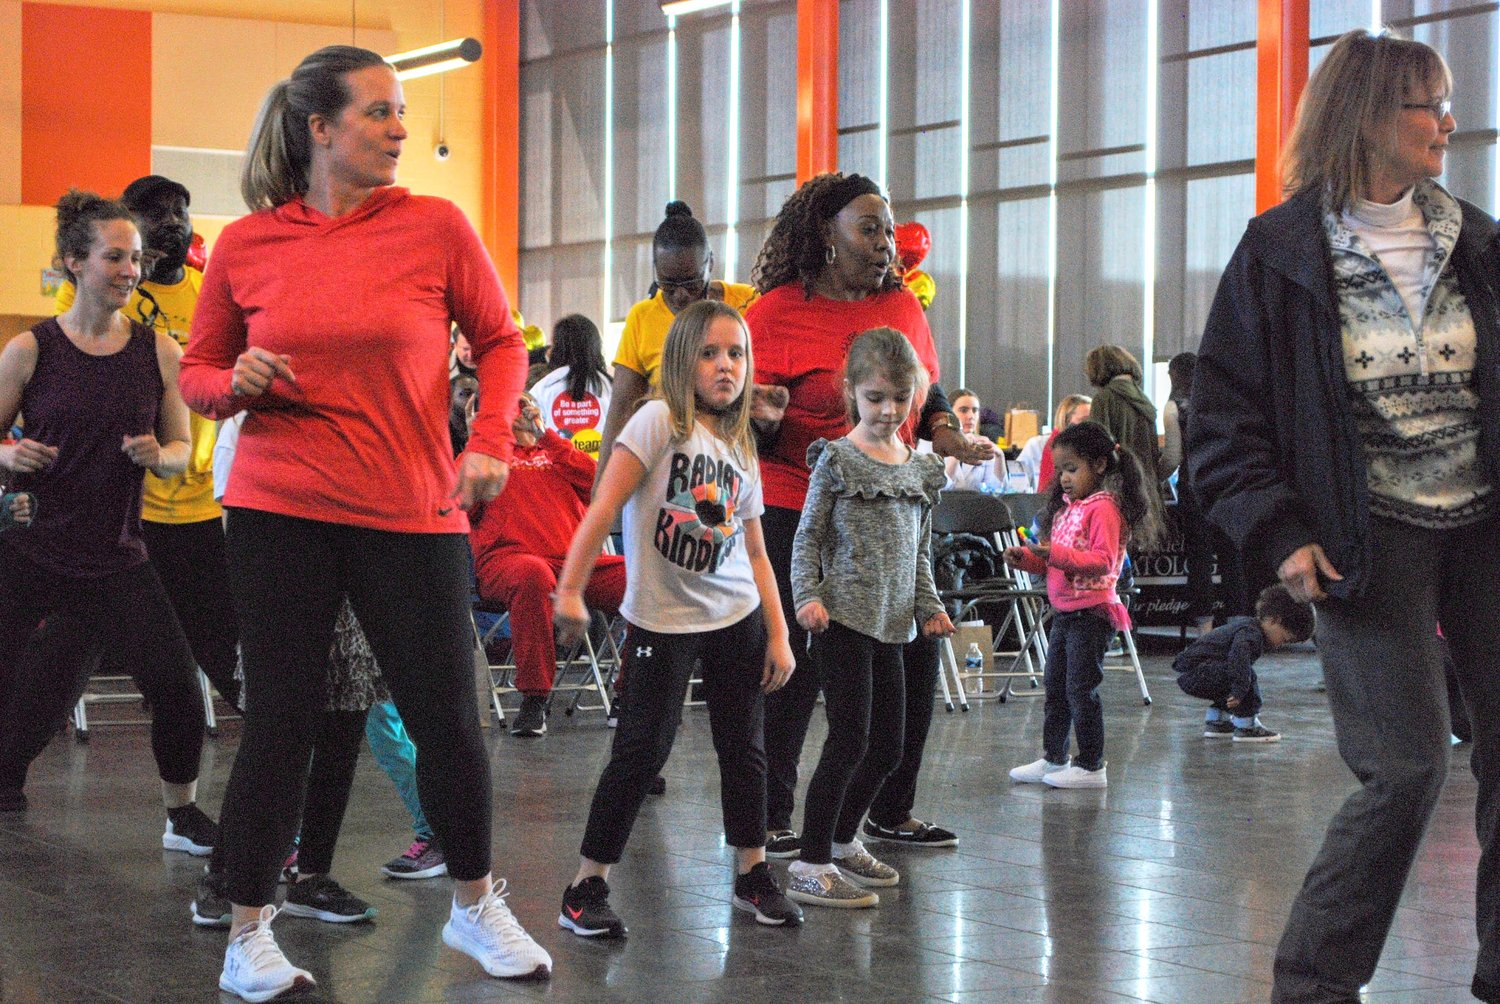 NRGETIC 4 LYFE encouraged families to participate in dance routines as part of a plan for a healthy heart.